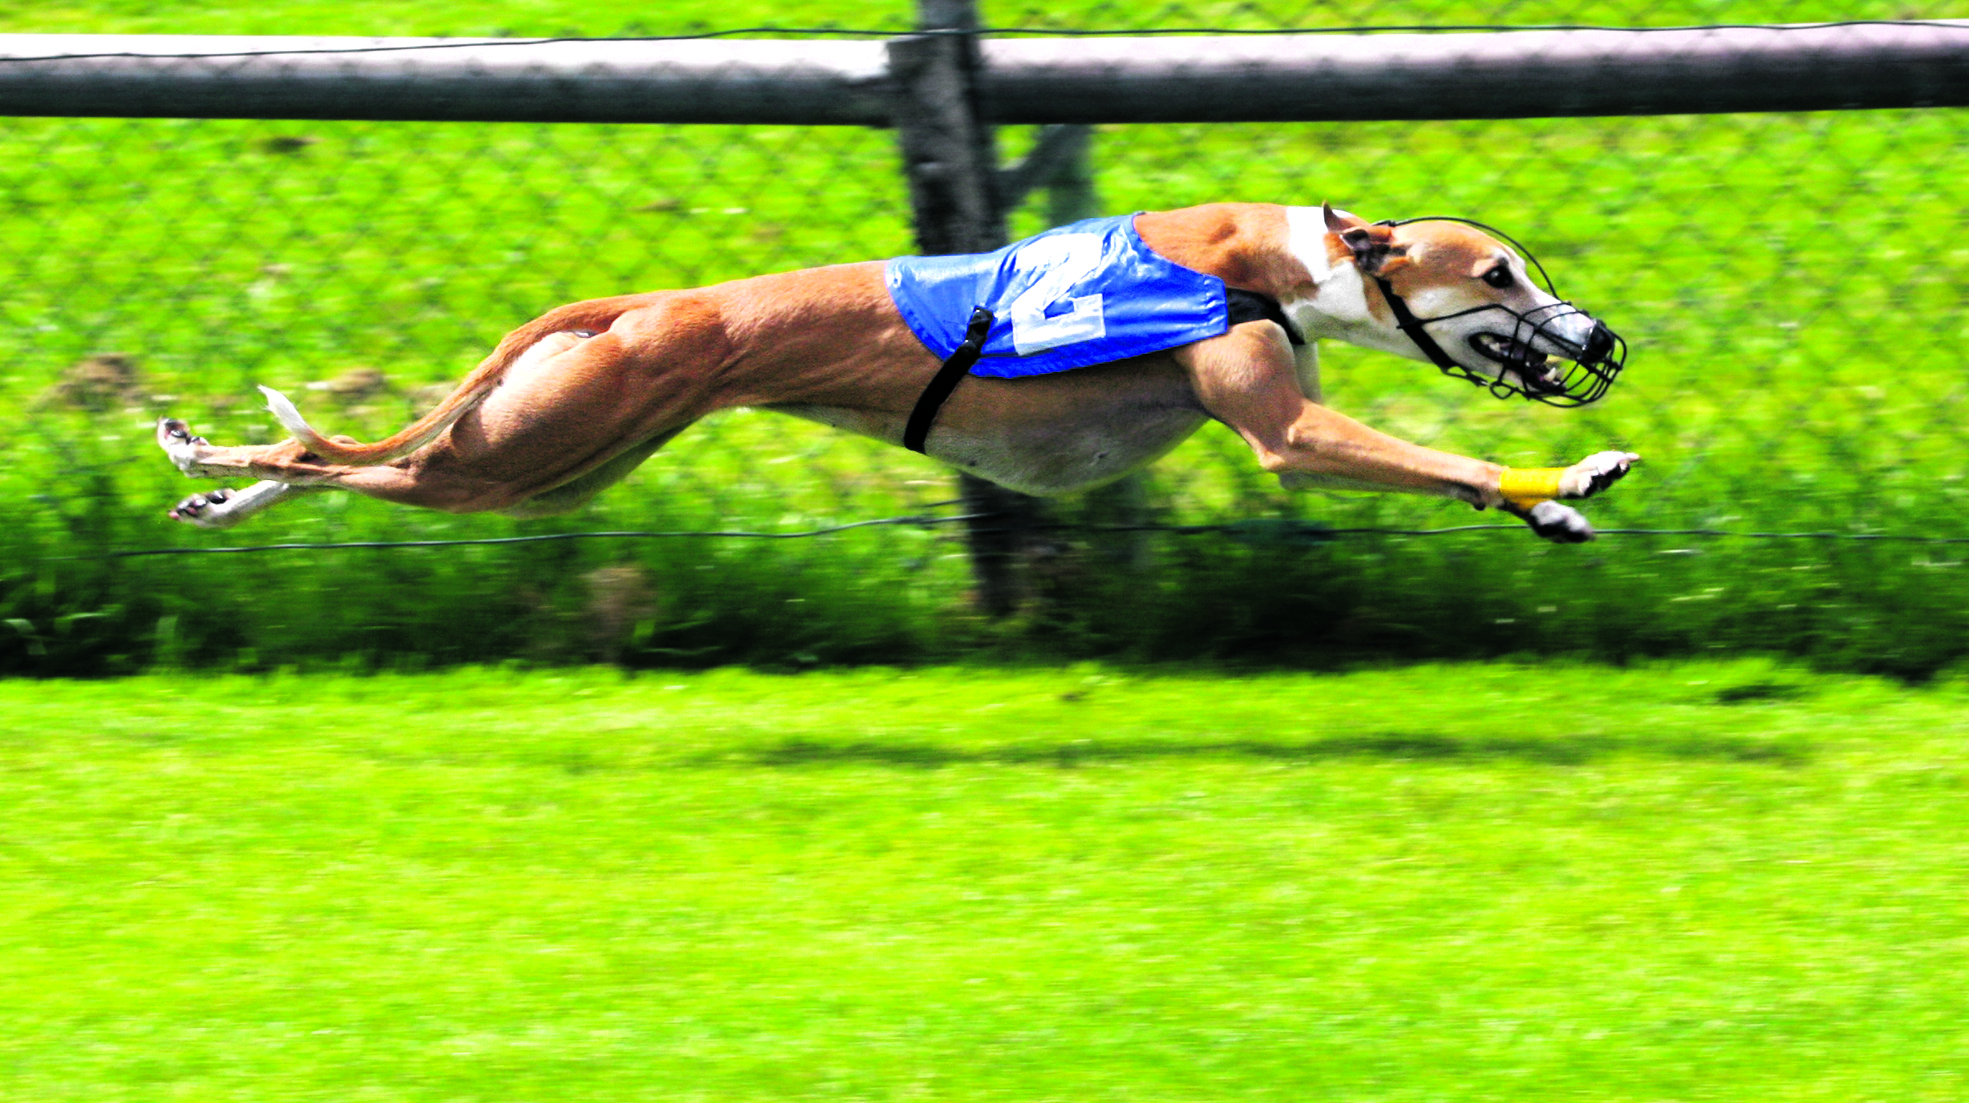 Greyhound racing in the firing line